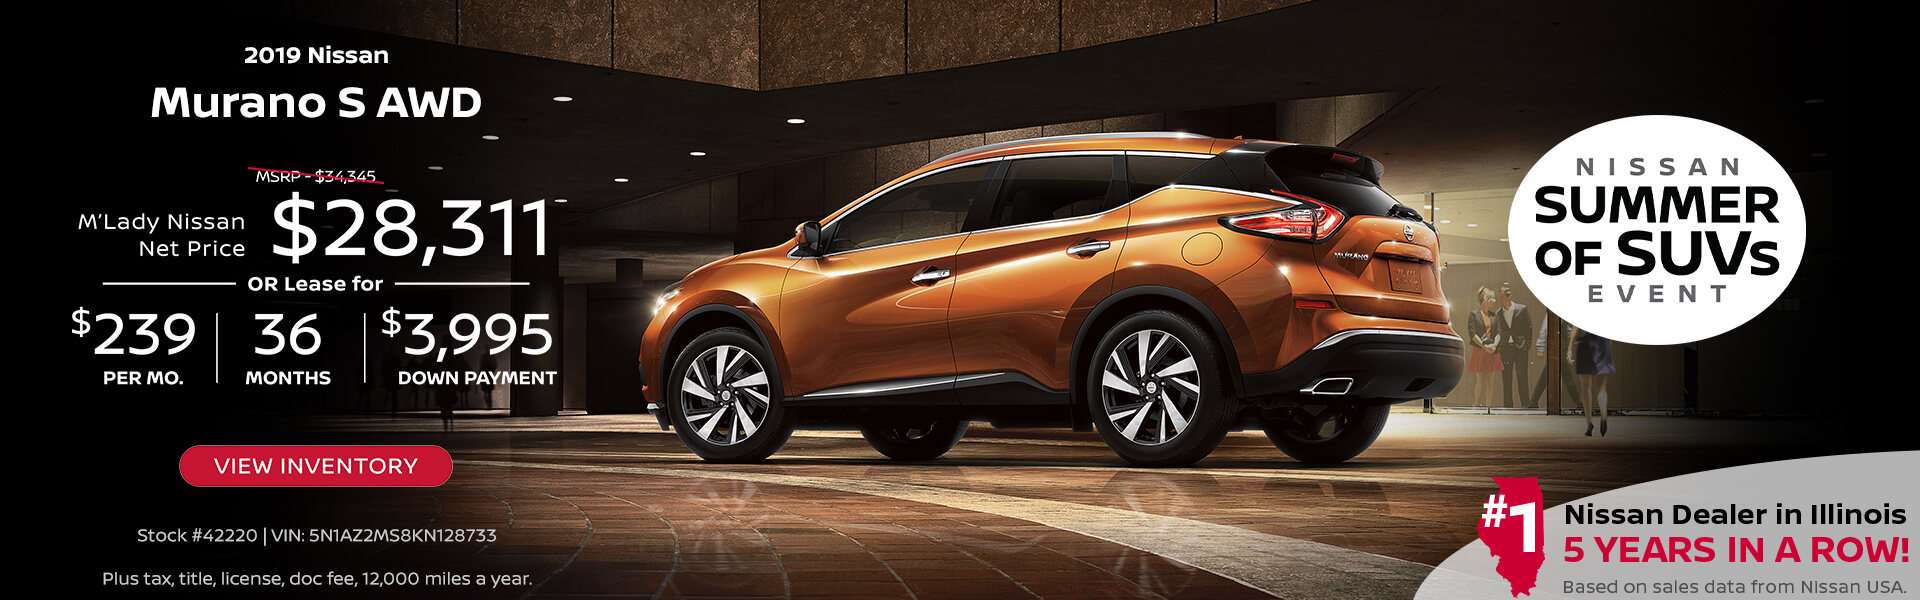 New Used Nissan Dealer In Crystal Lake Il M Lady Nissan